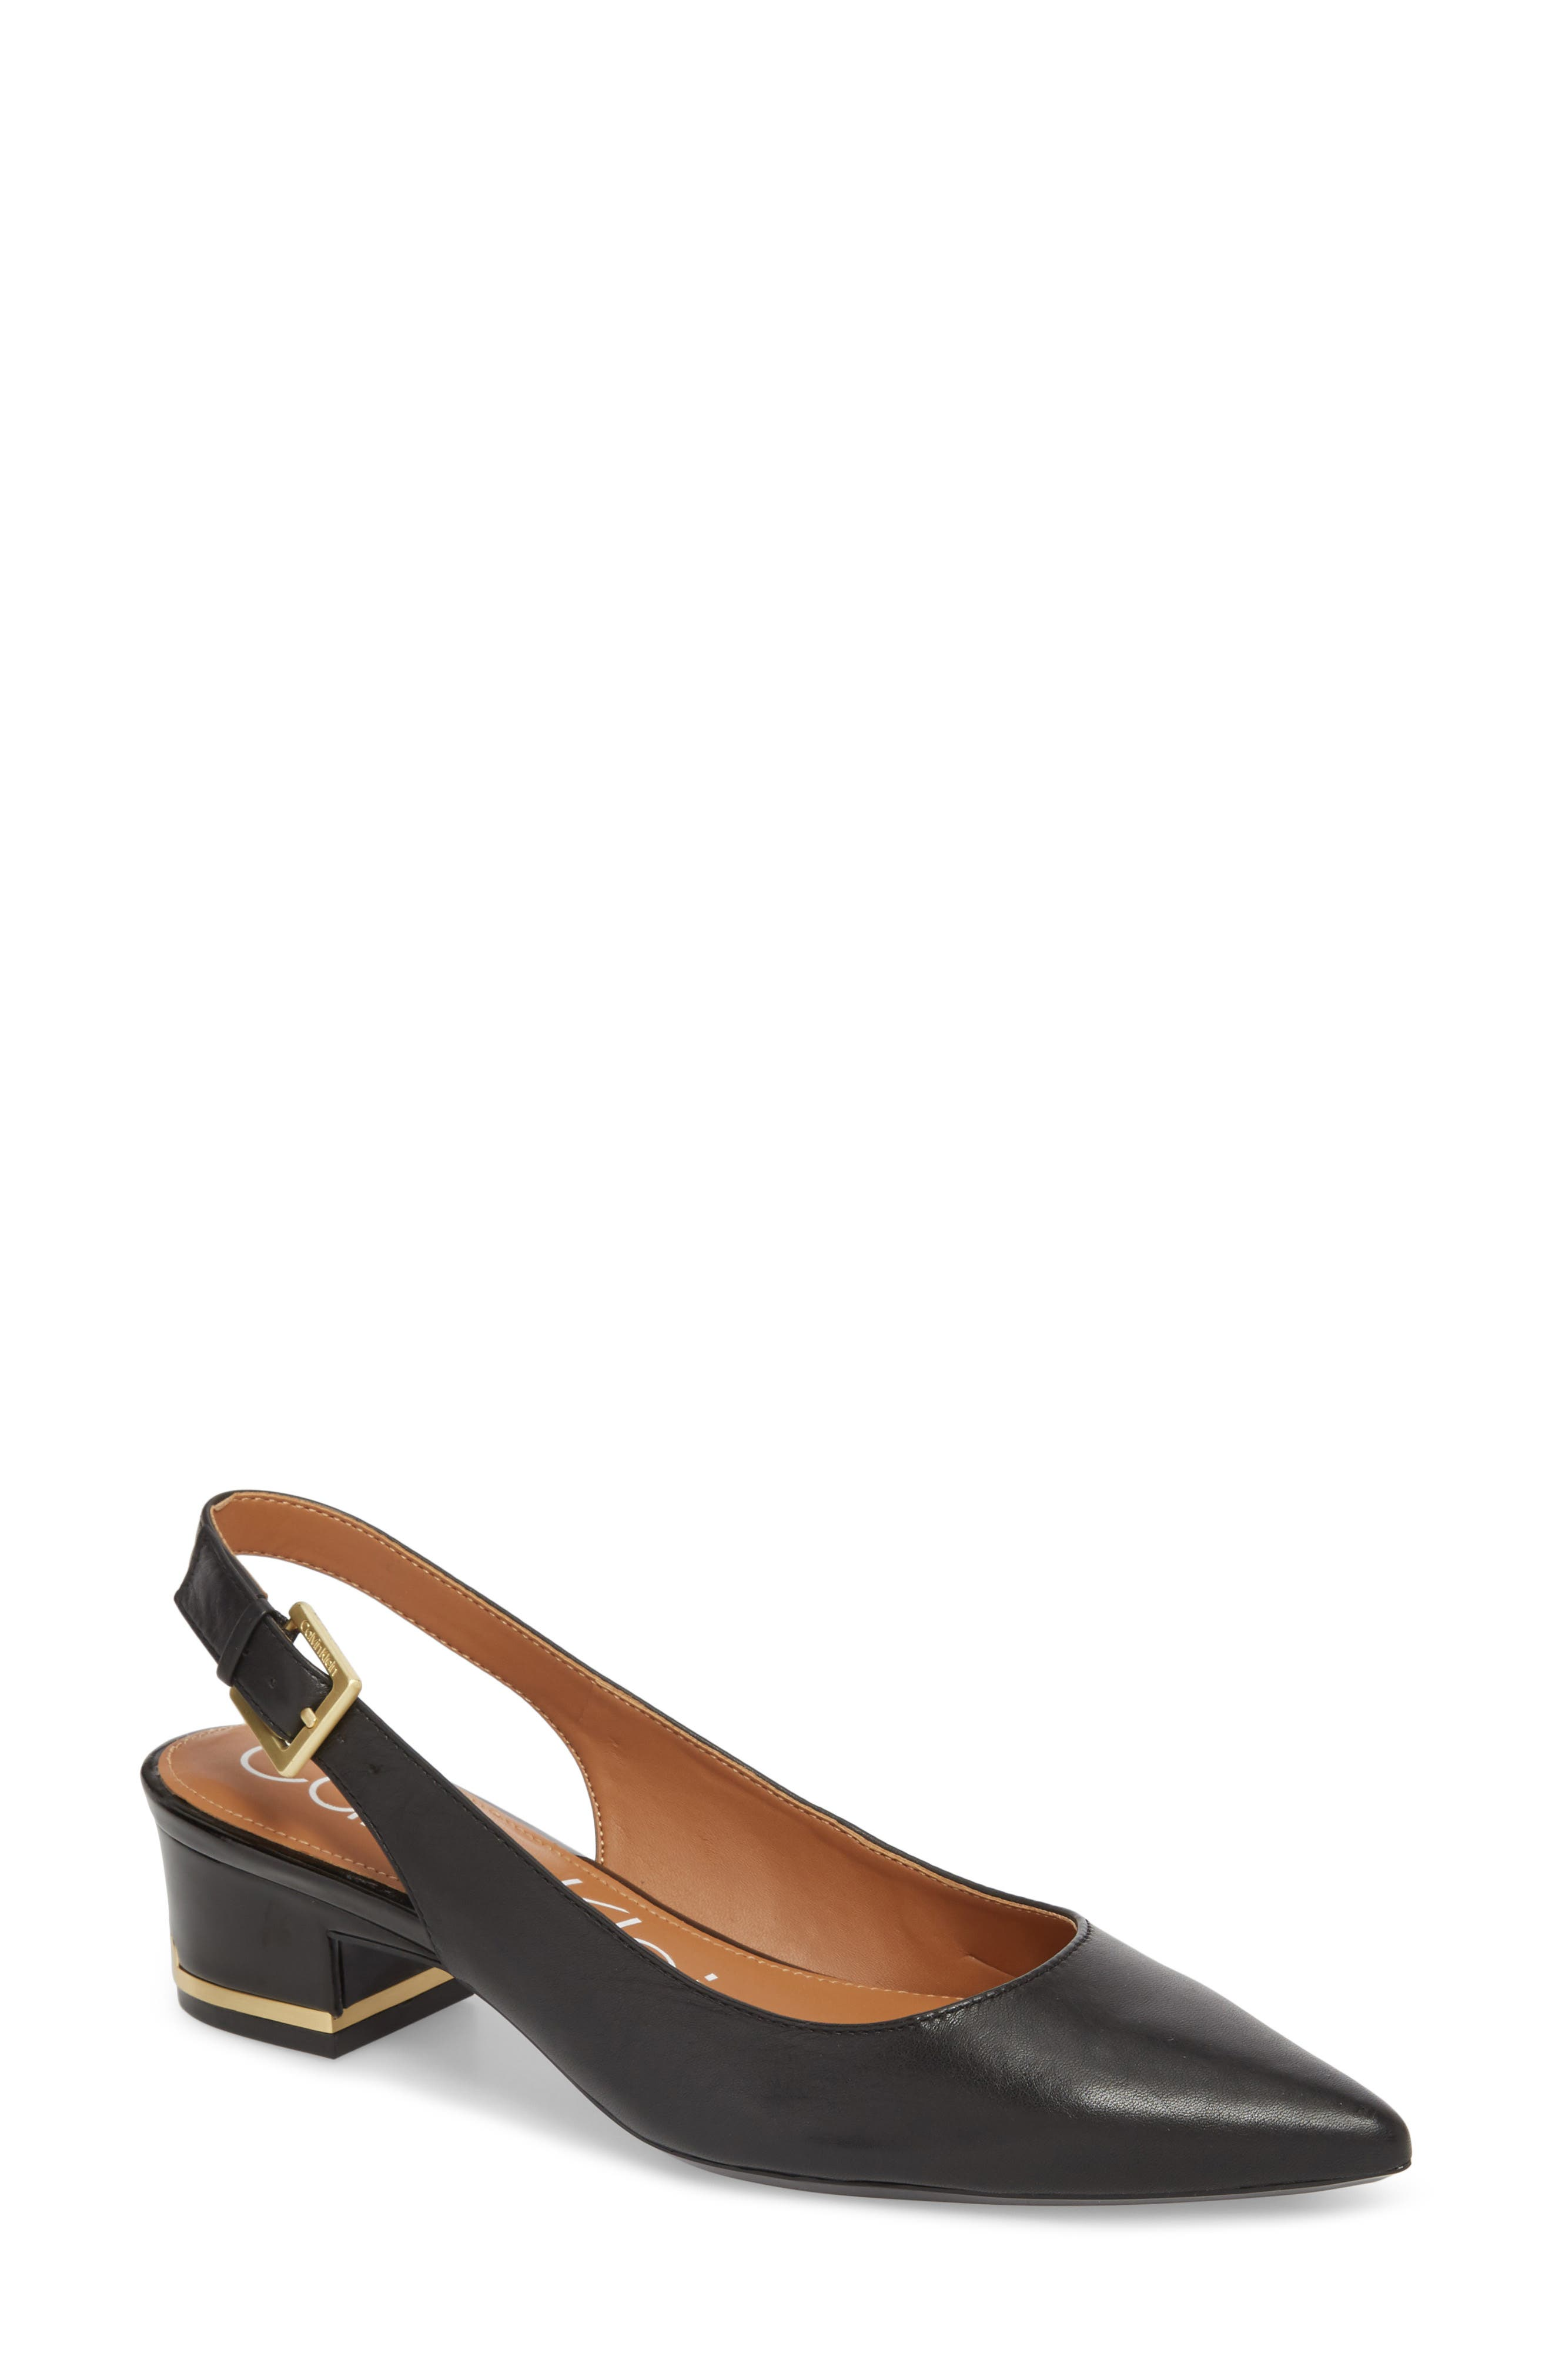 Glorianne Slingback Pointy Toe Pump,                             Main thumbnail 1, color,                             BLACK LEATHER